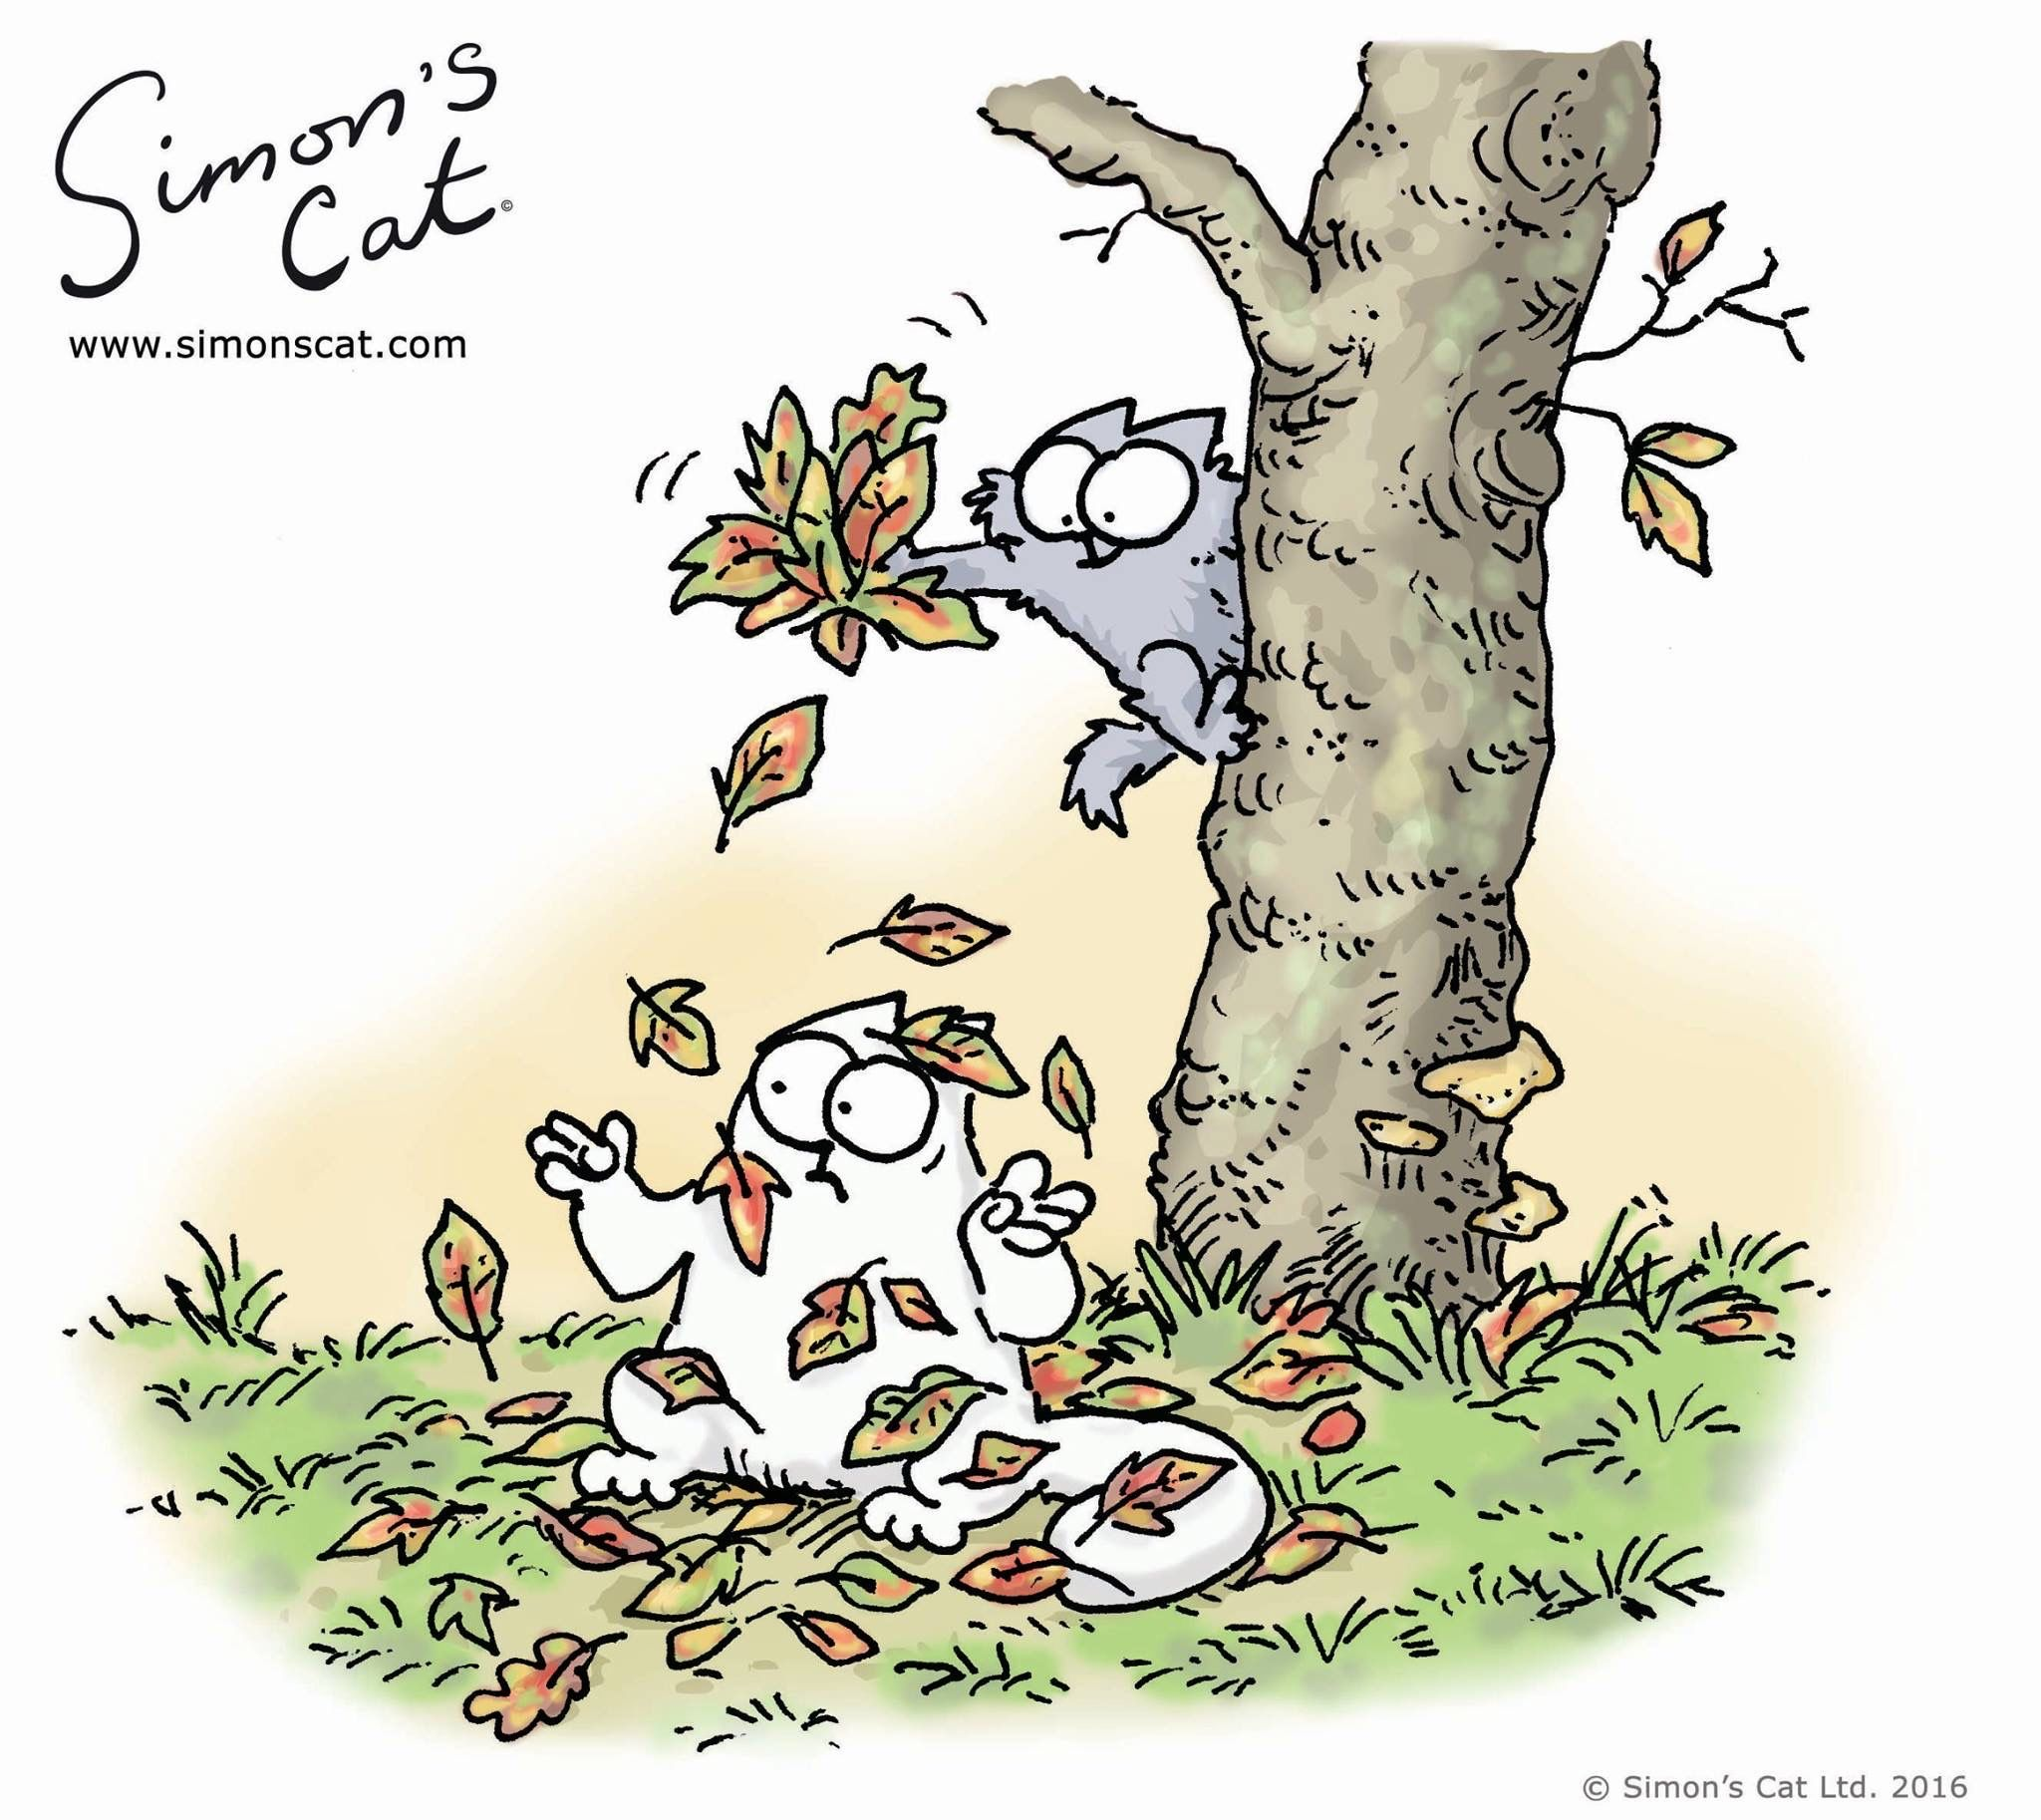 Pin by Mustang Lady on SIMON'S CAT!! in 2020 Simons cat